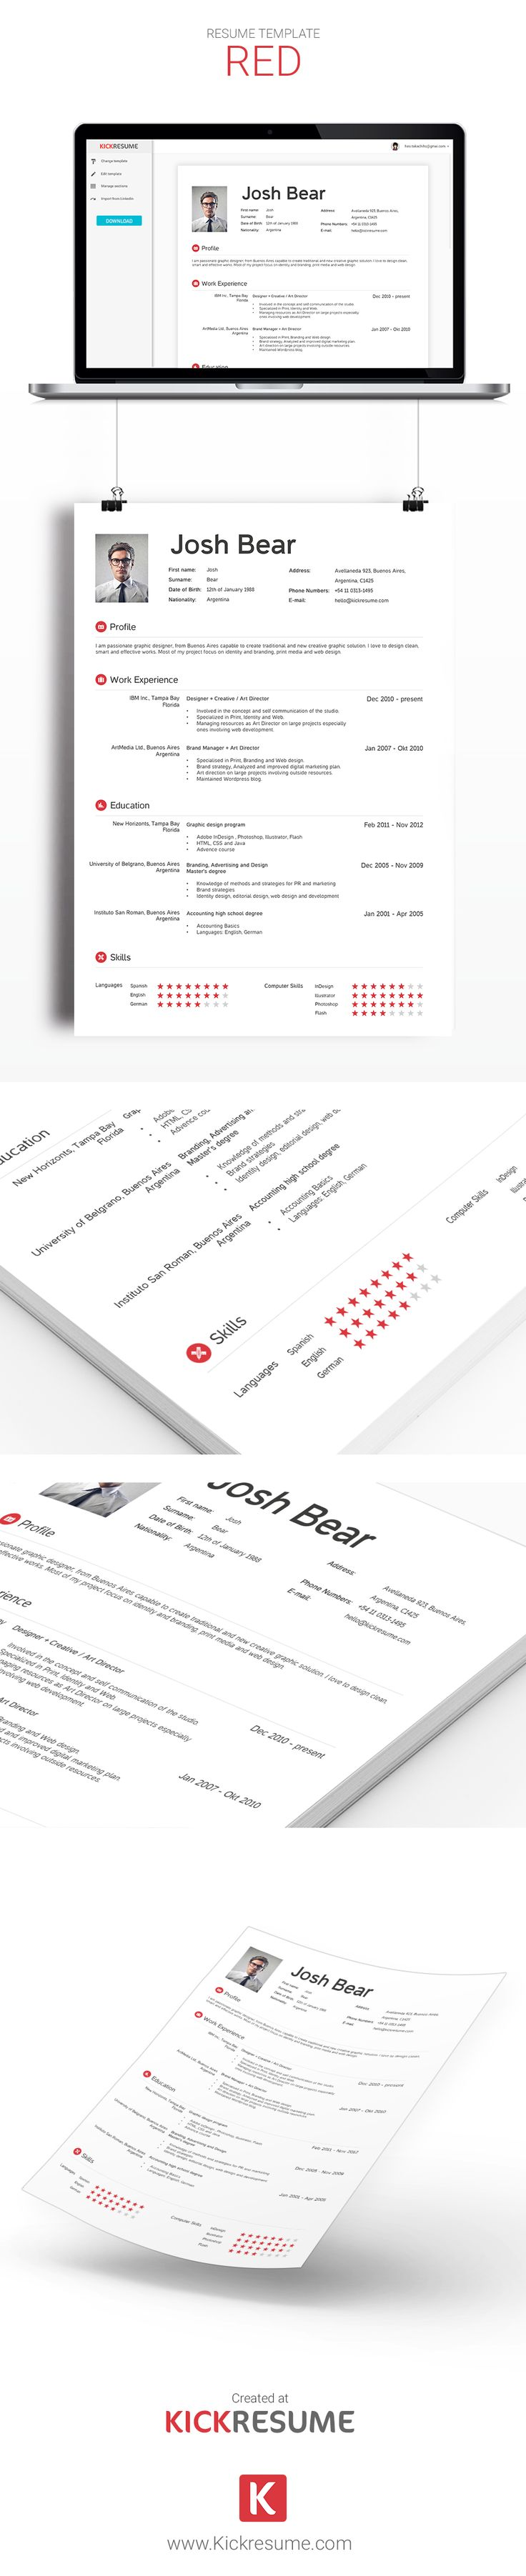 create beautiful resumes in minutes kickresume wwwkickresumecomresume sample resume template - Beautiful Resumes